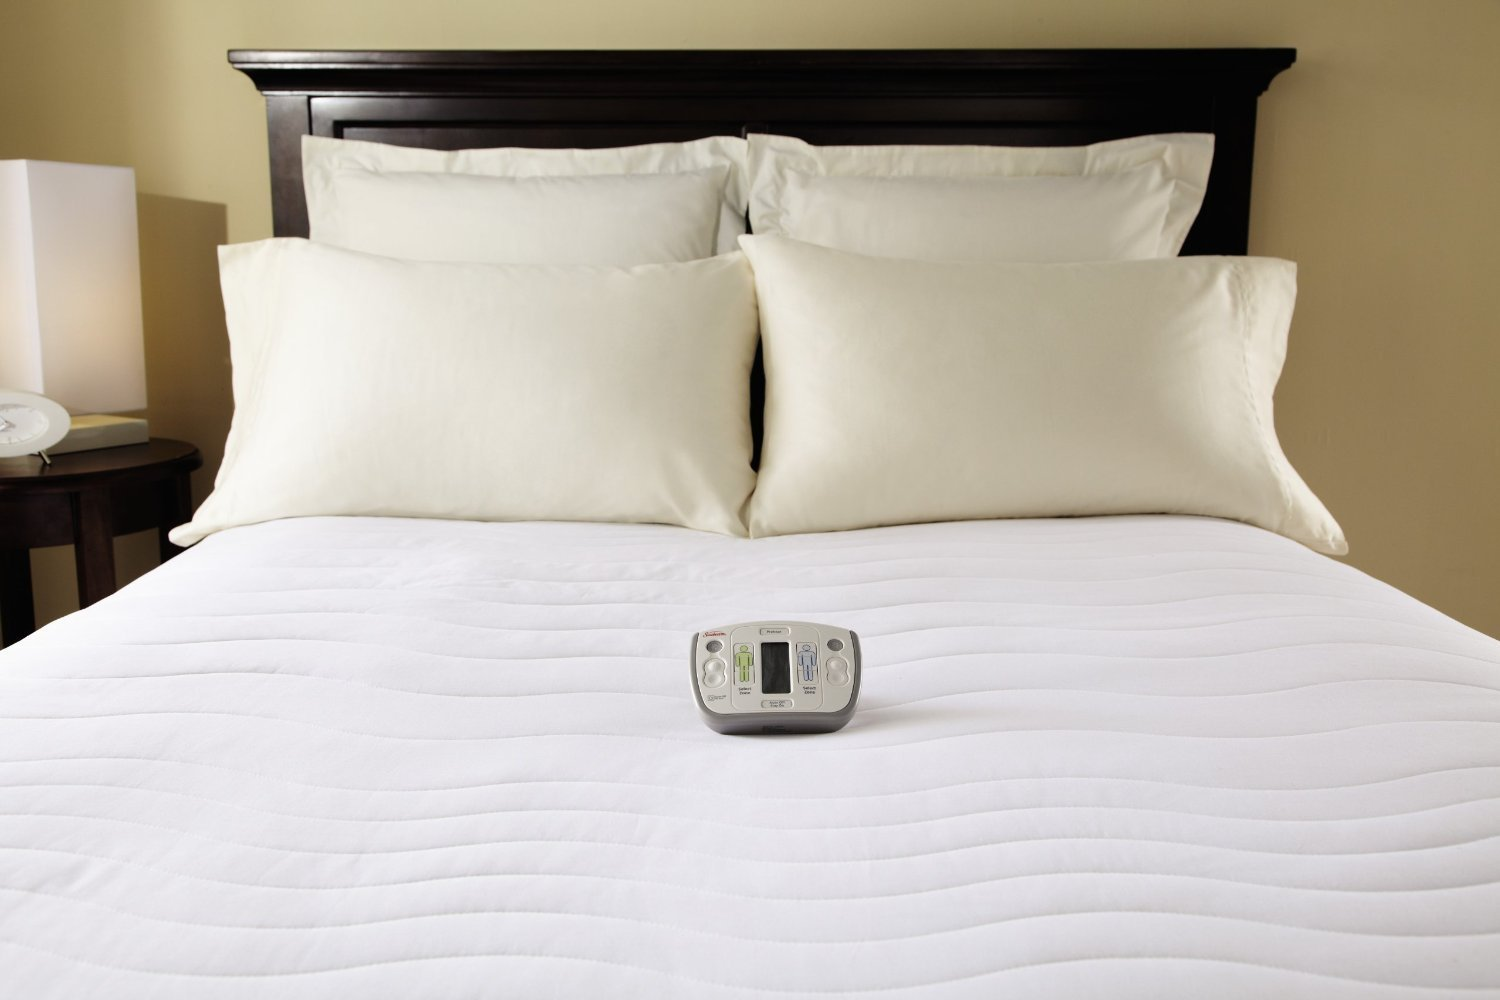 Sunbeam Heated Mattress Pad | Therapeutic with Zoned Heat, 10 Heat Settings, Queen (Renewed)